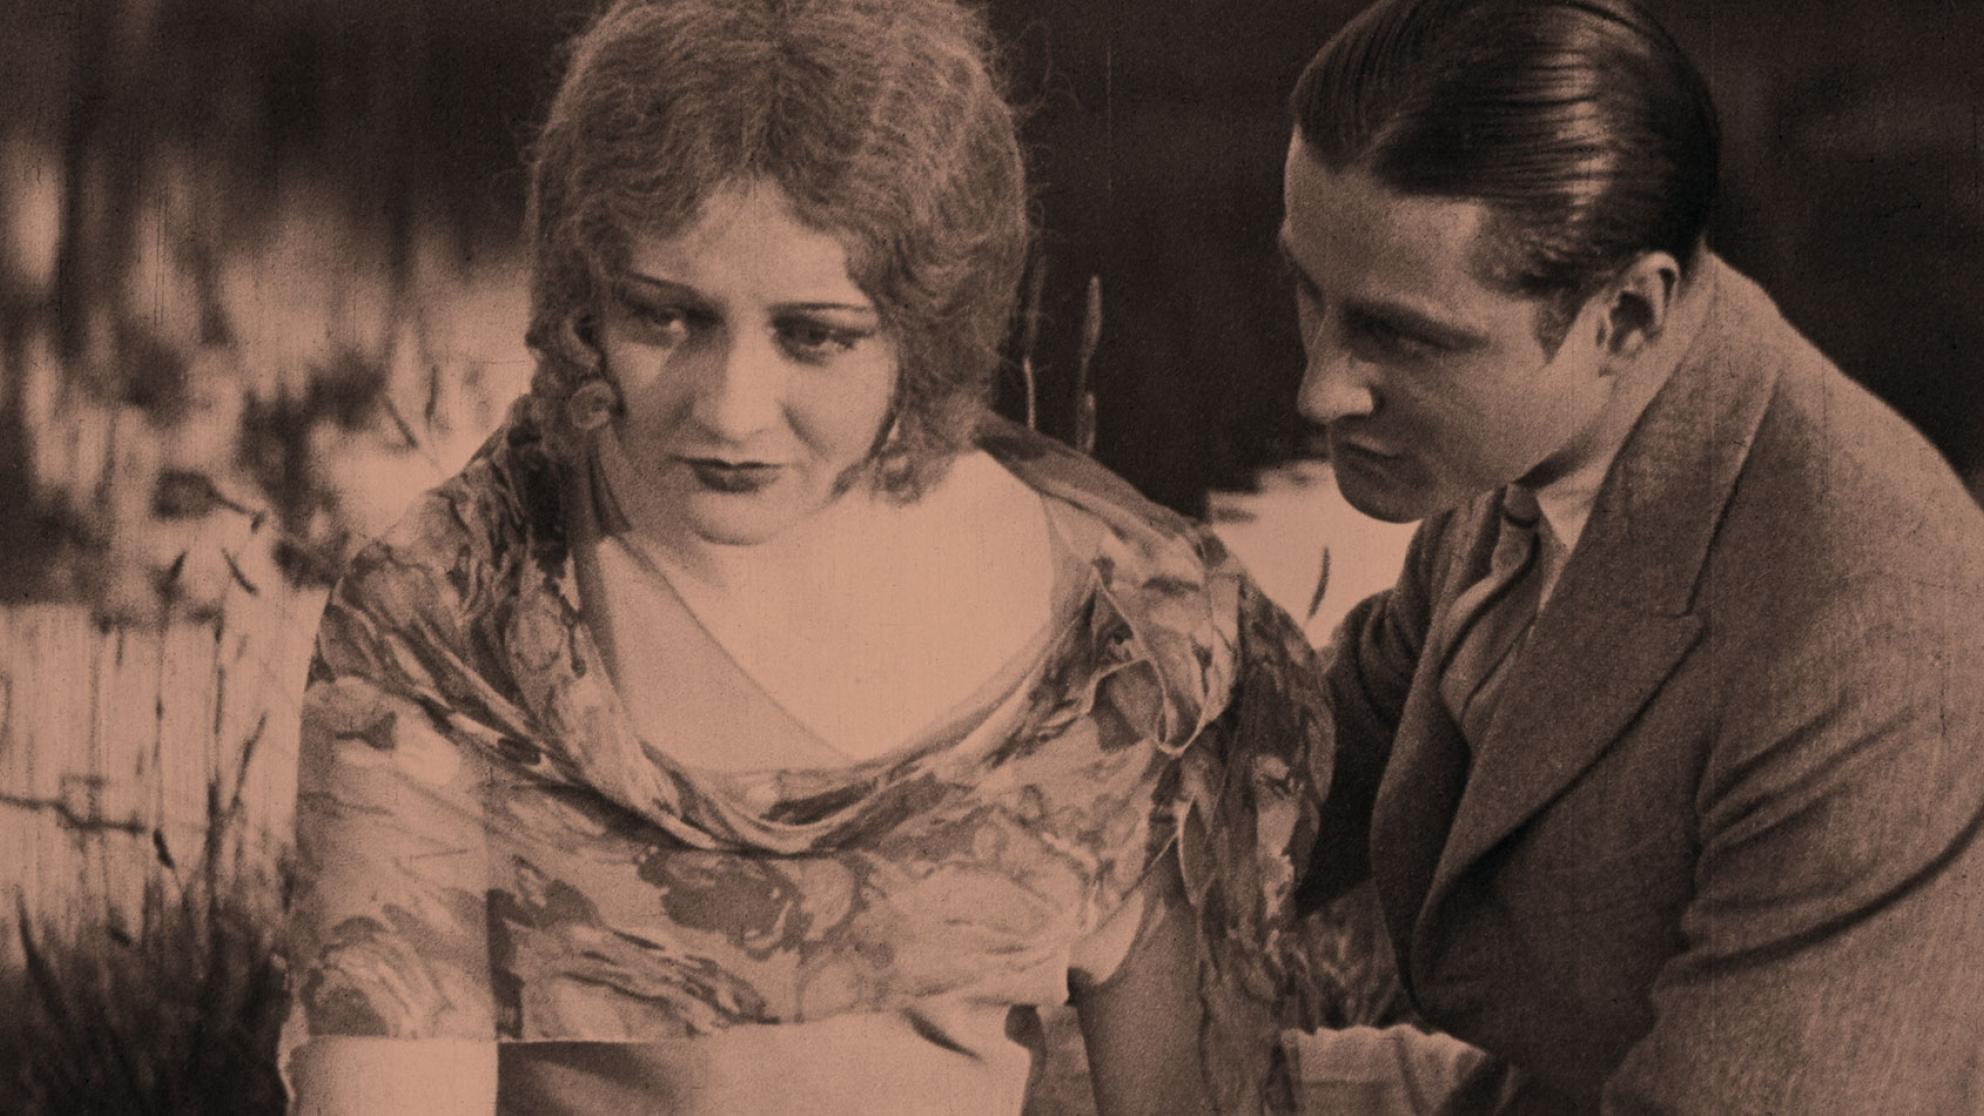 Josef Bambach tried to console Isabel McDonagh in a scene from the 1929 silent movie The Cheaters